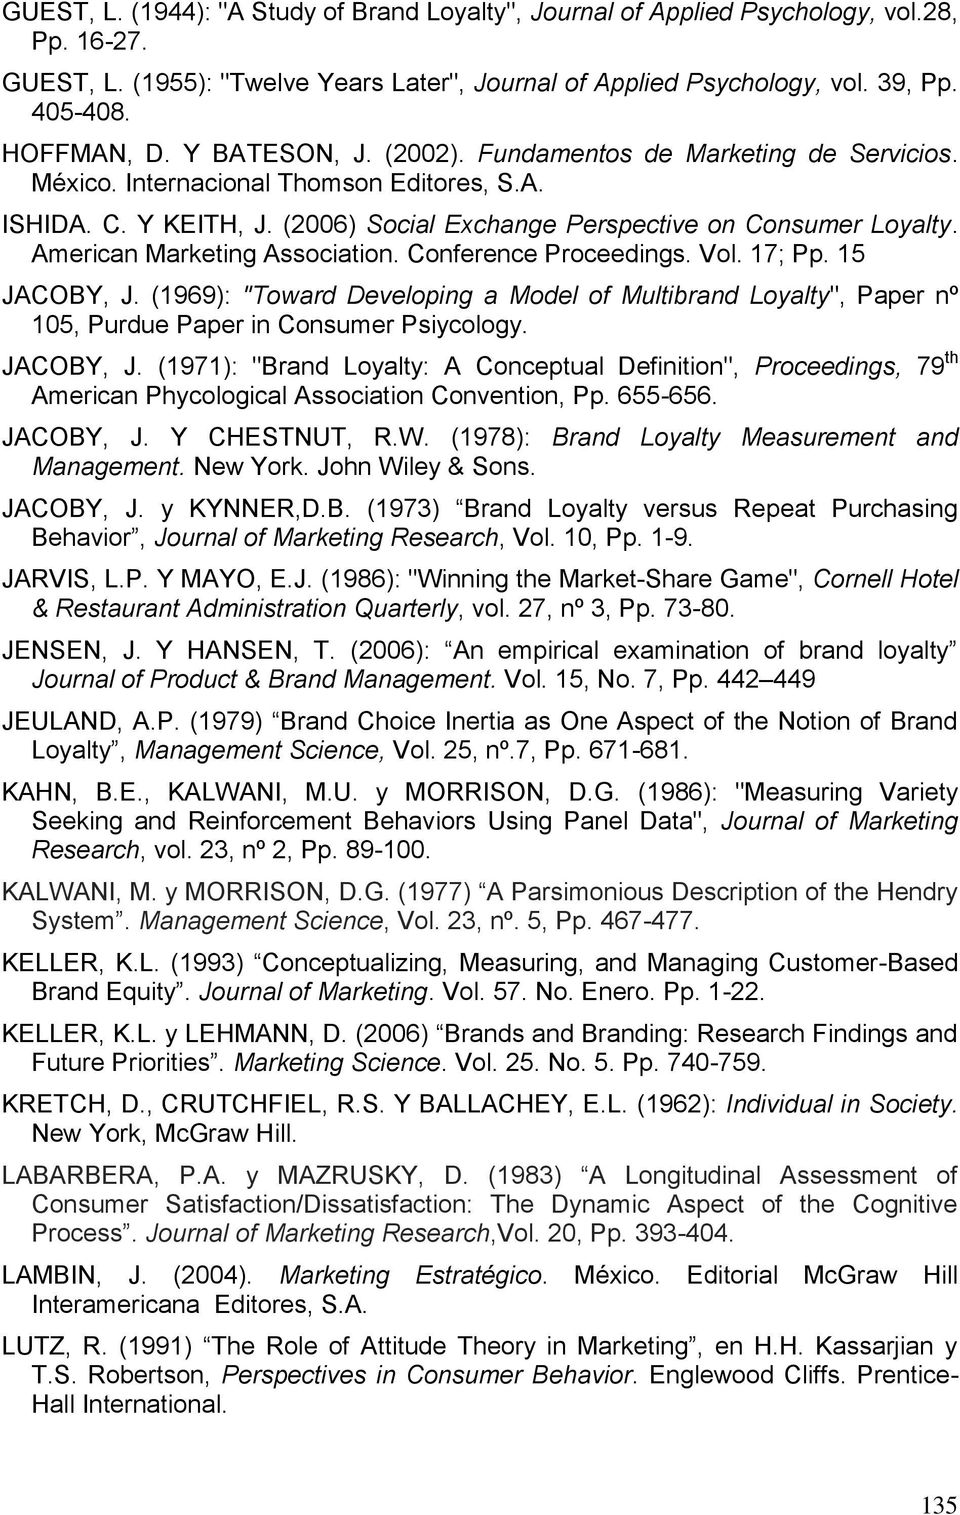 "American Marketing Association. Conference Proceedings. Vol. 17; Pp. 15 JACOBY, J. (1969): ""Toward Developing a Model of Multibrand Loyalty"", Paper nº 105, Purdue Paper in Consumer Psiycology."